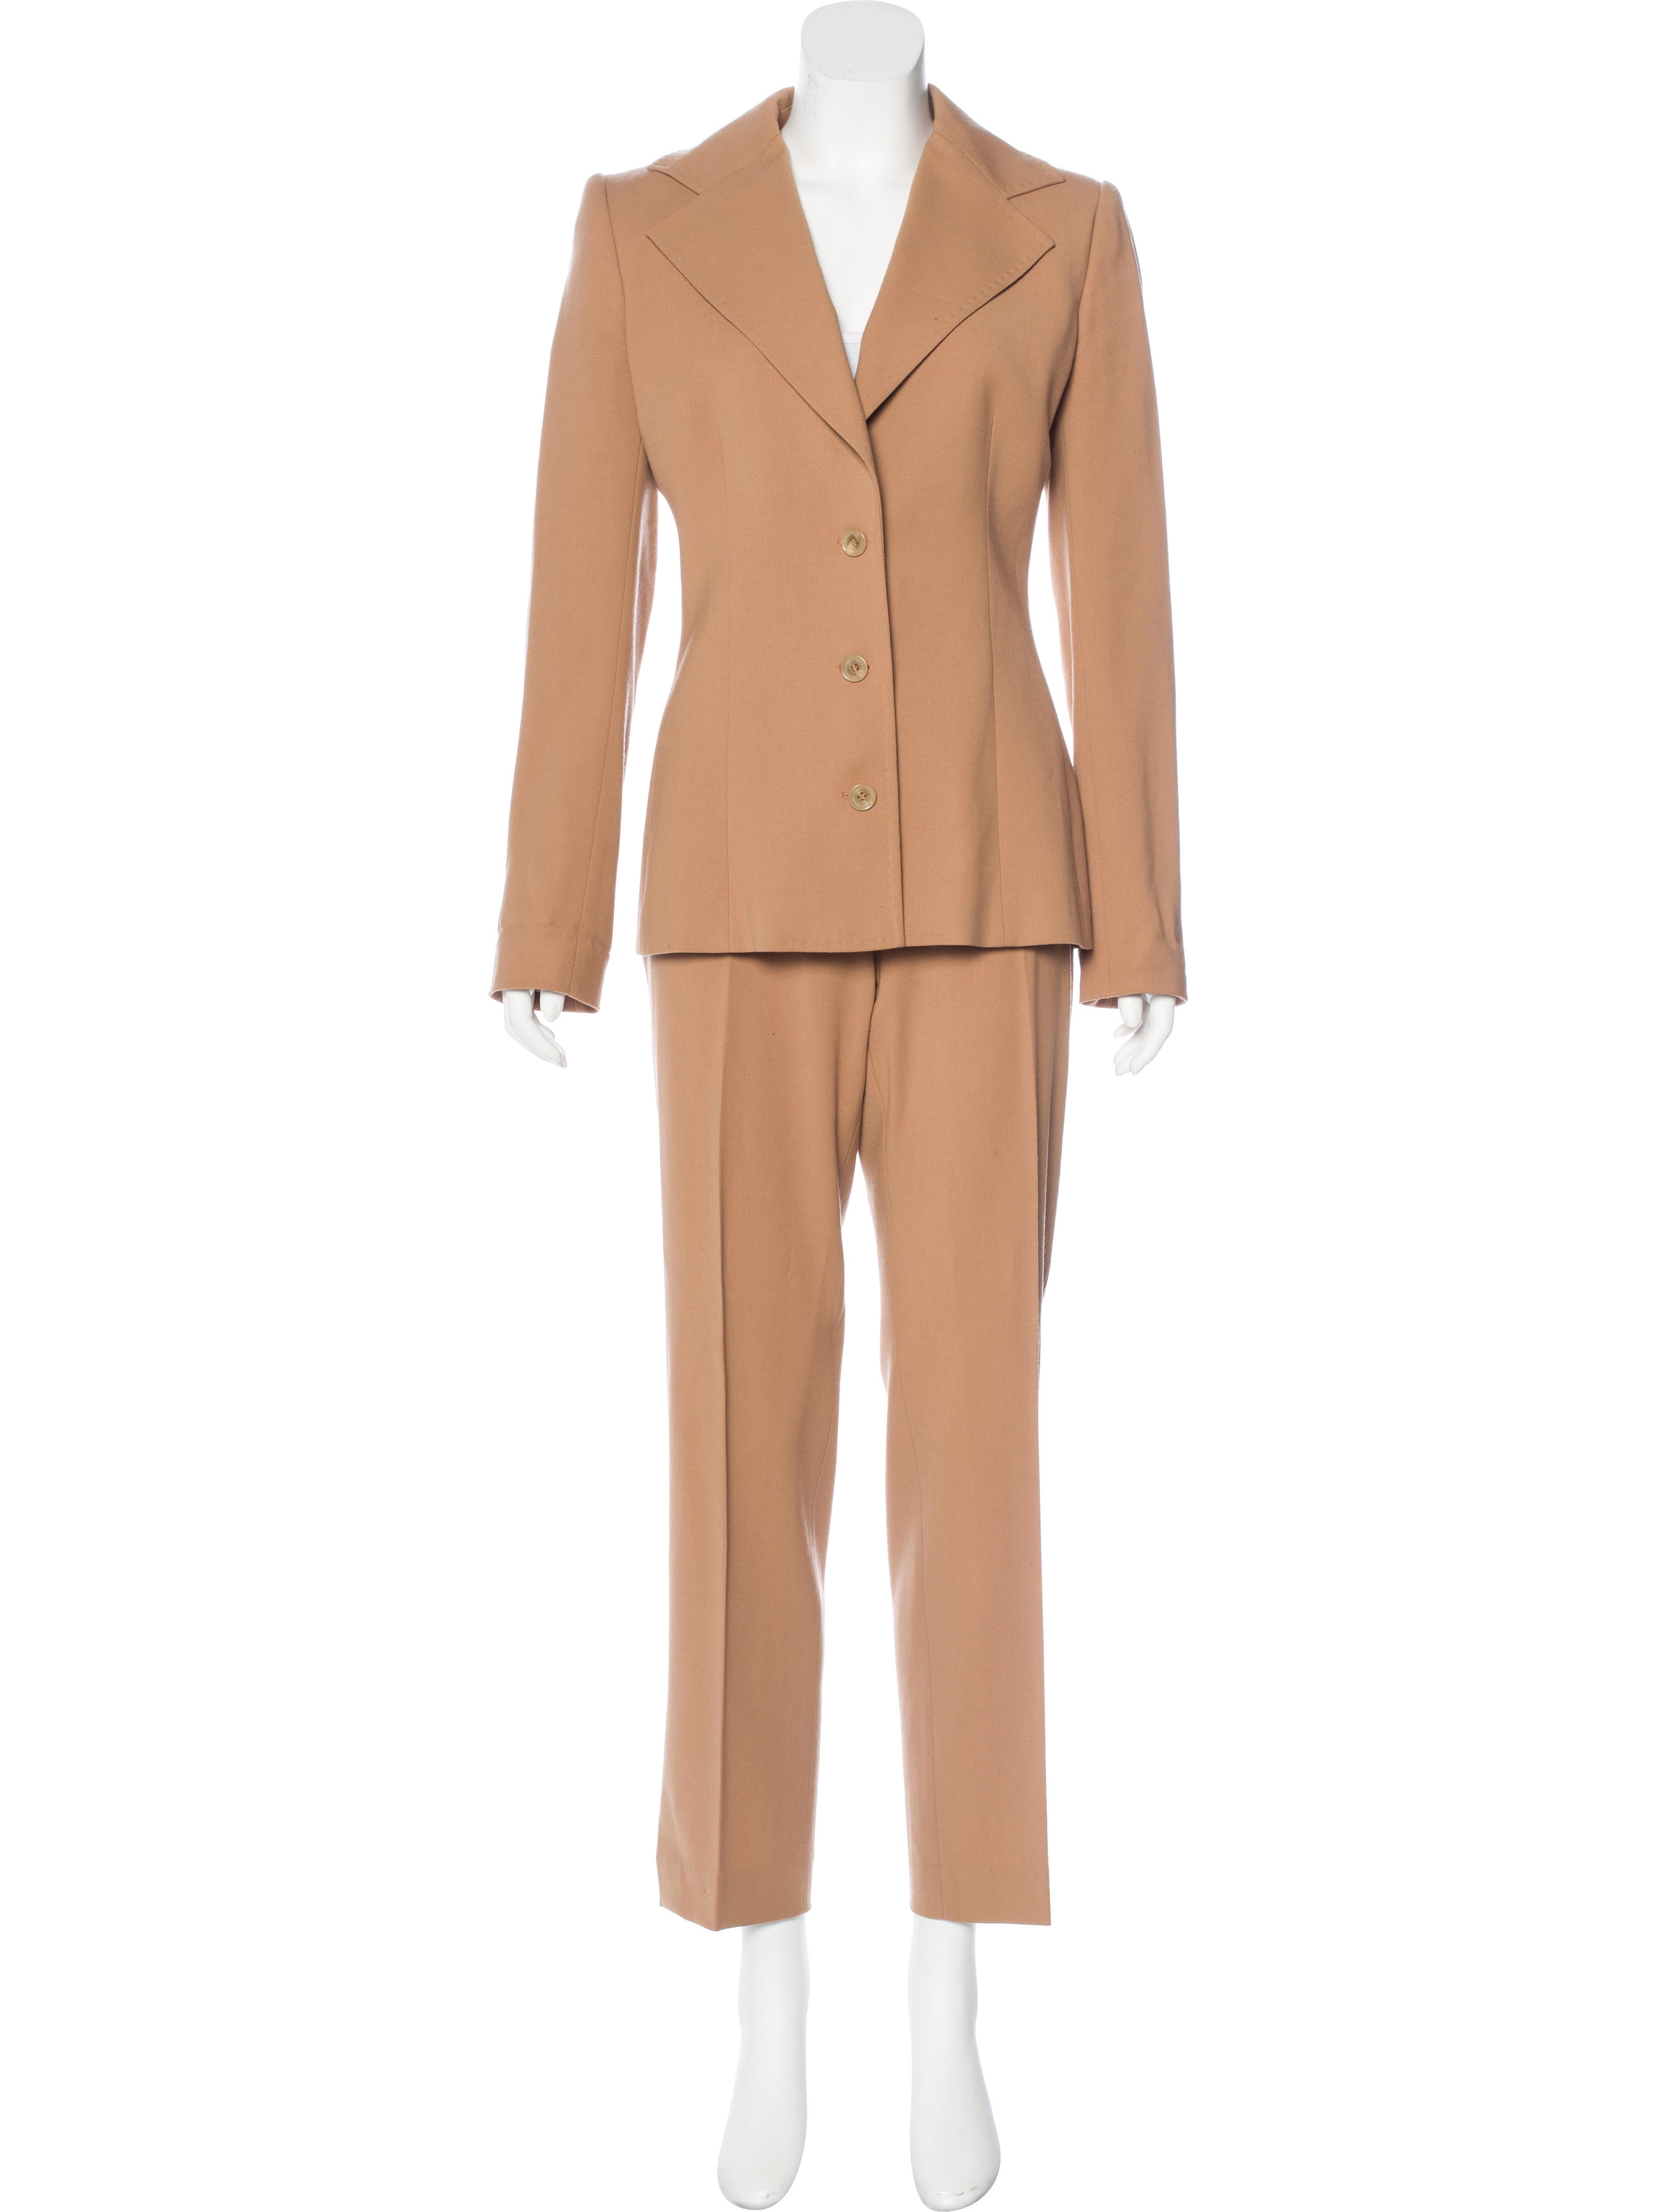 Find great deals on eBay for straight leg pant suit. Shop with confidence.